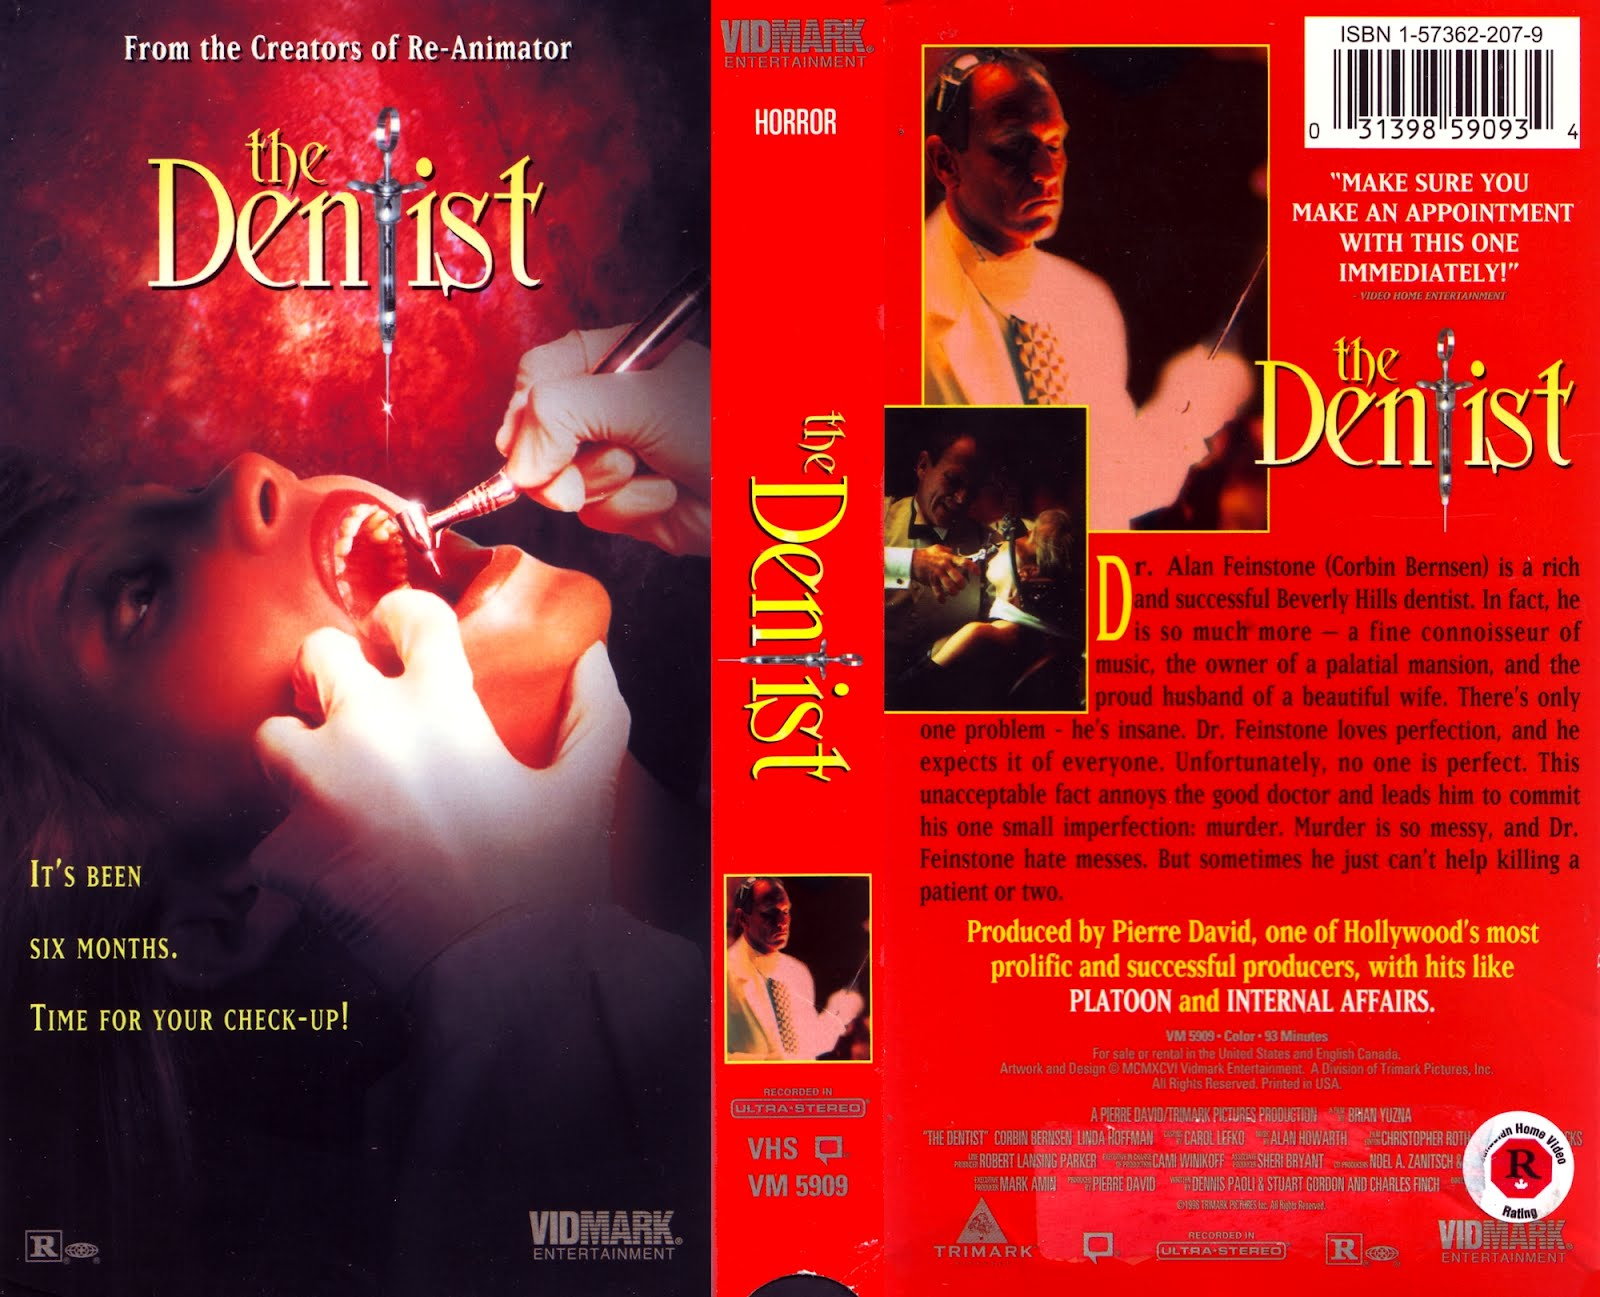 The Dentist (1996) Horror movie posters, Dentist, Vhs to dvd